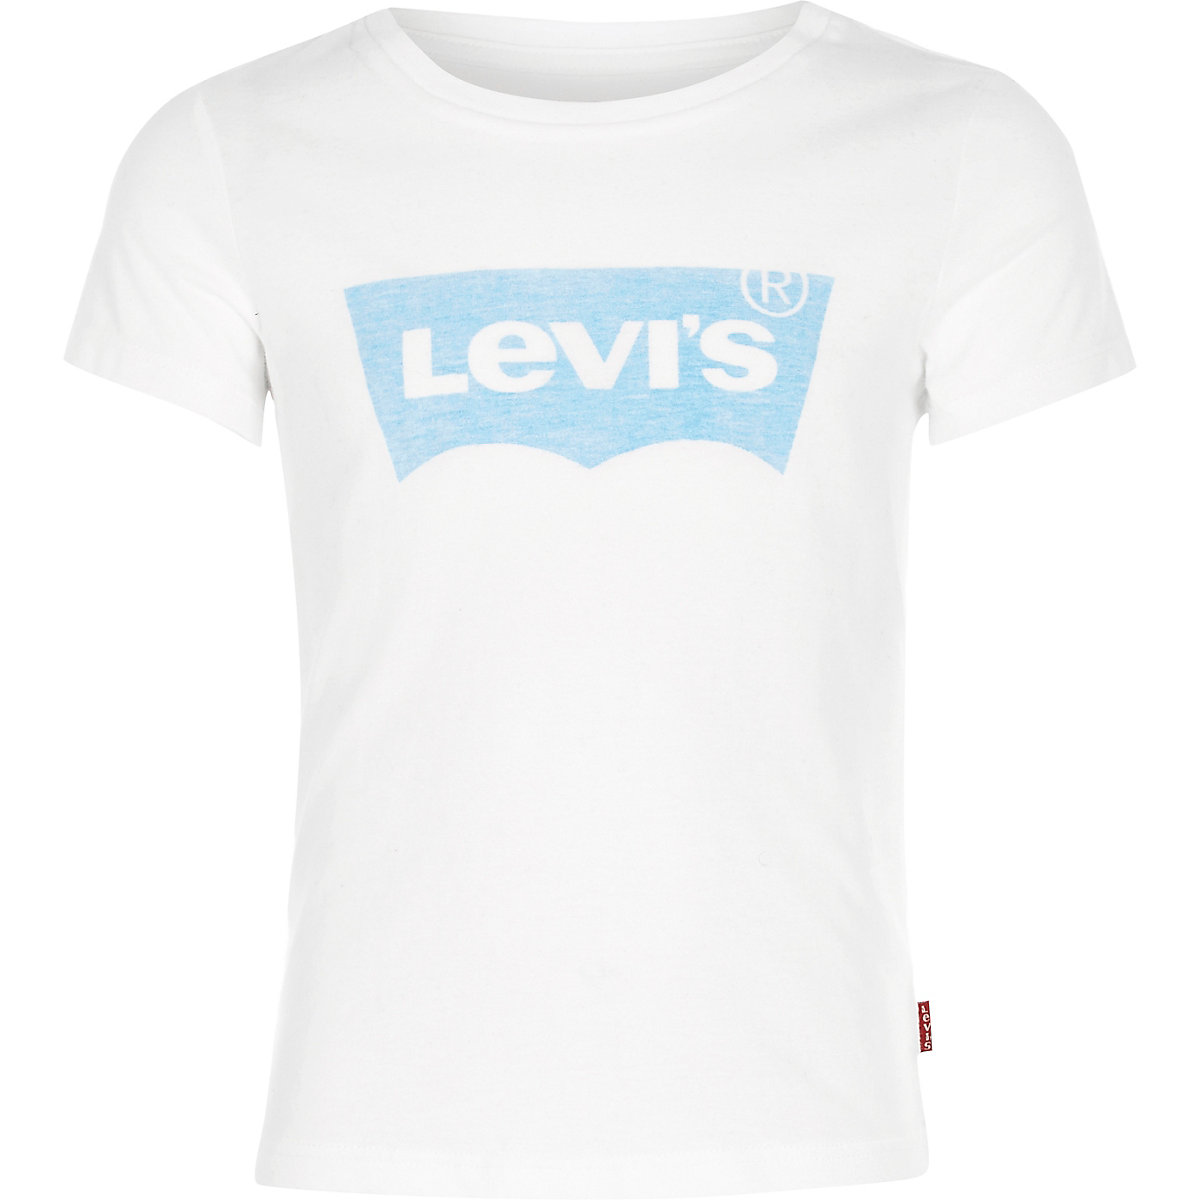 Girls Levi's white logo T-shirt